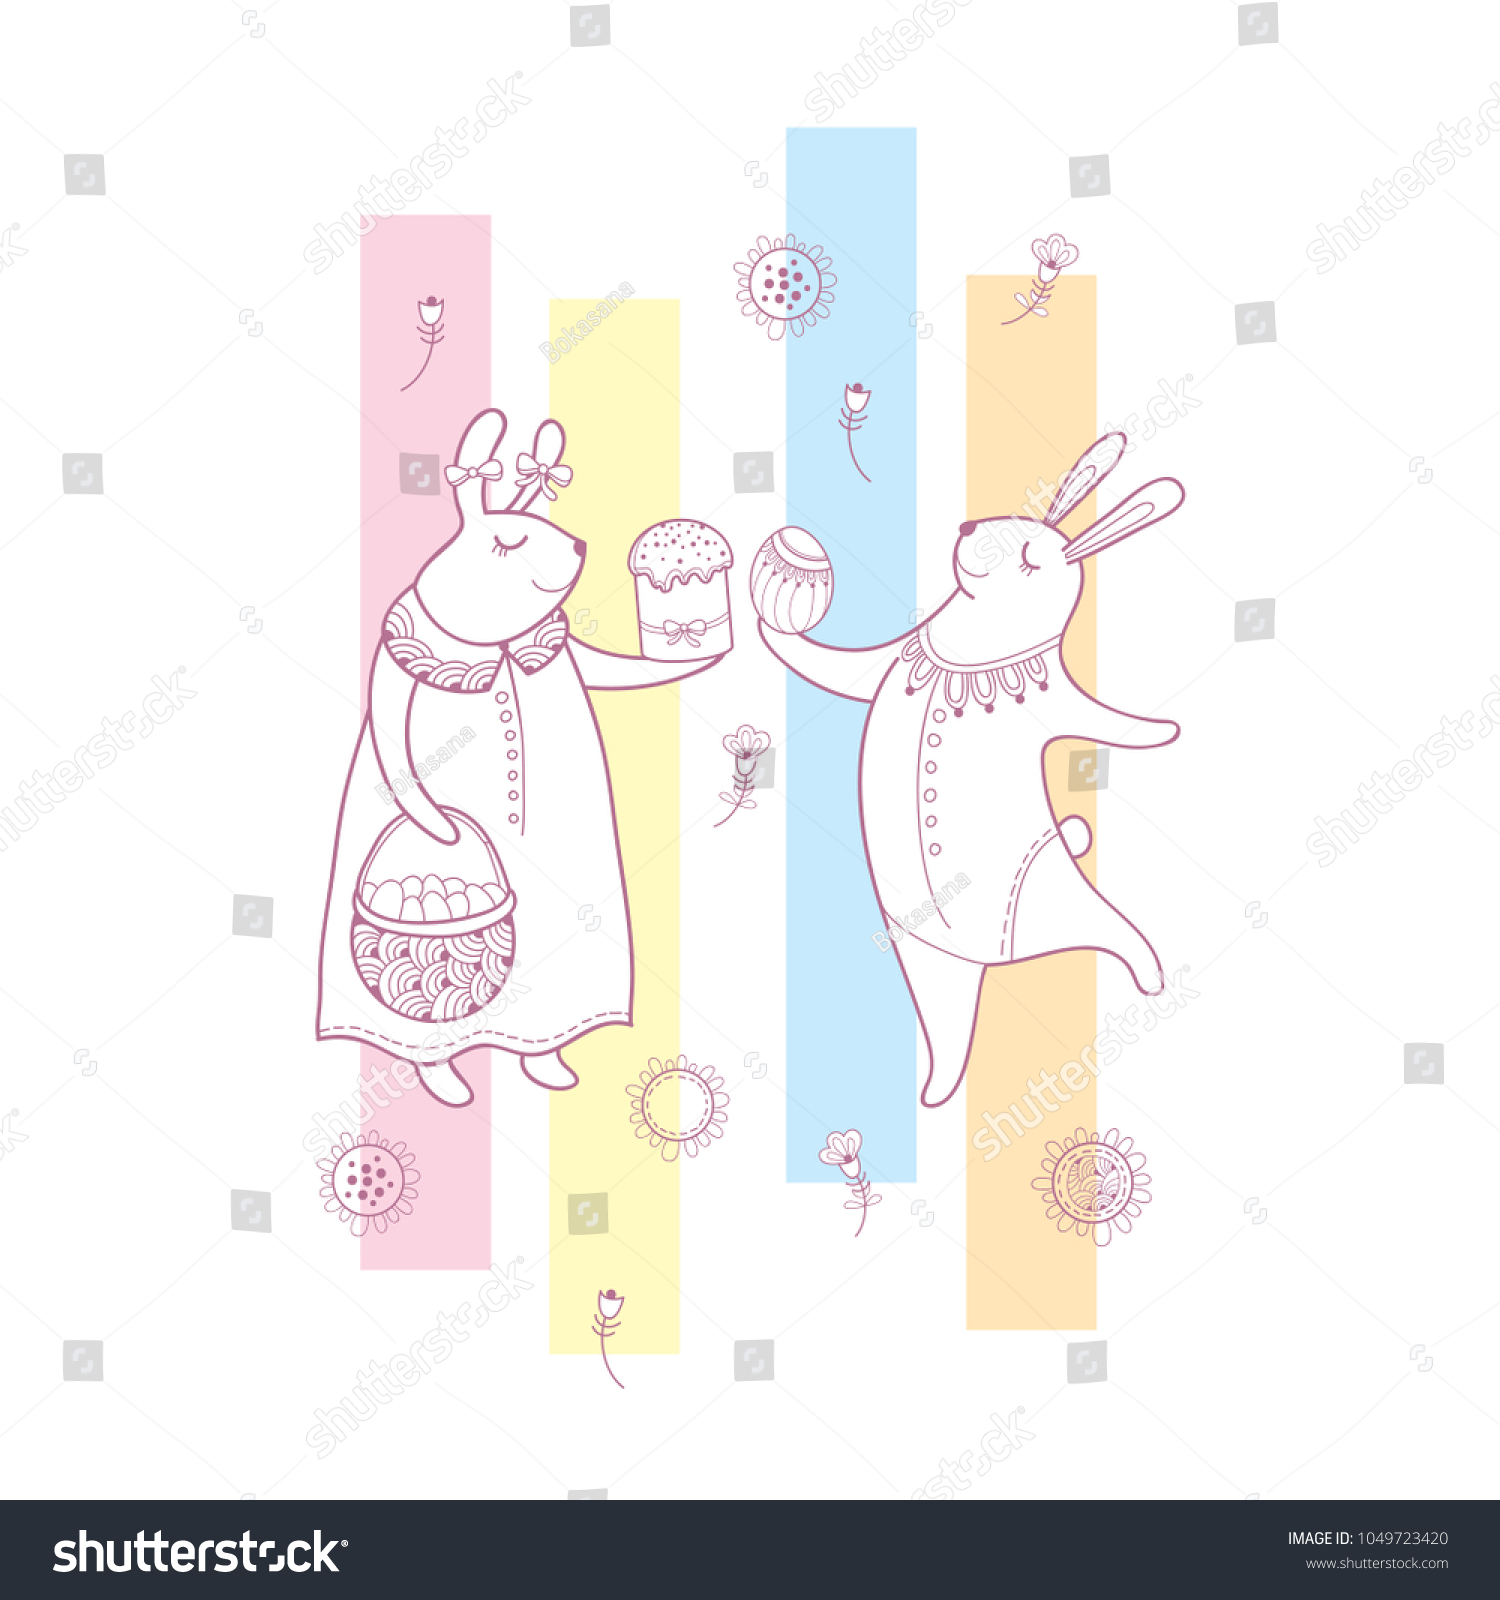 Vector easter greeting card outline rabbit stock vector 1049723420 vector easter greeting card with outline rabbit couple traditional easter symbol and stripes in pastel m4hsunfo Images